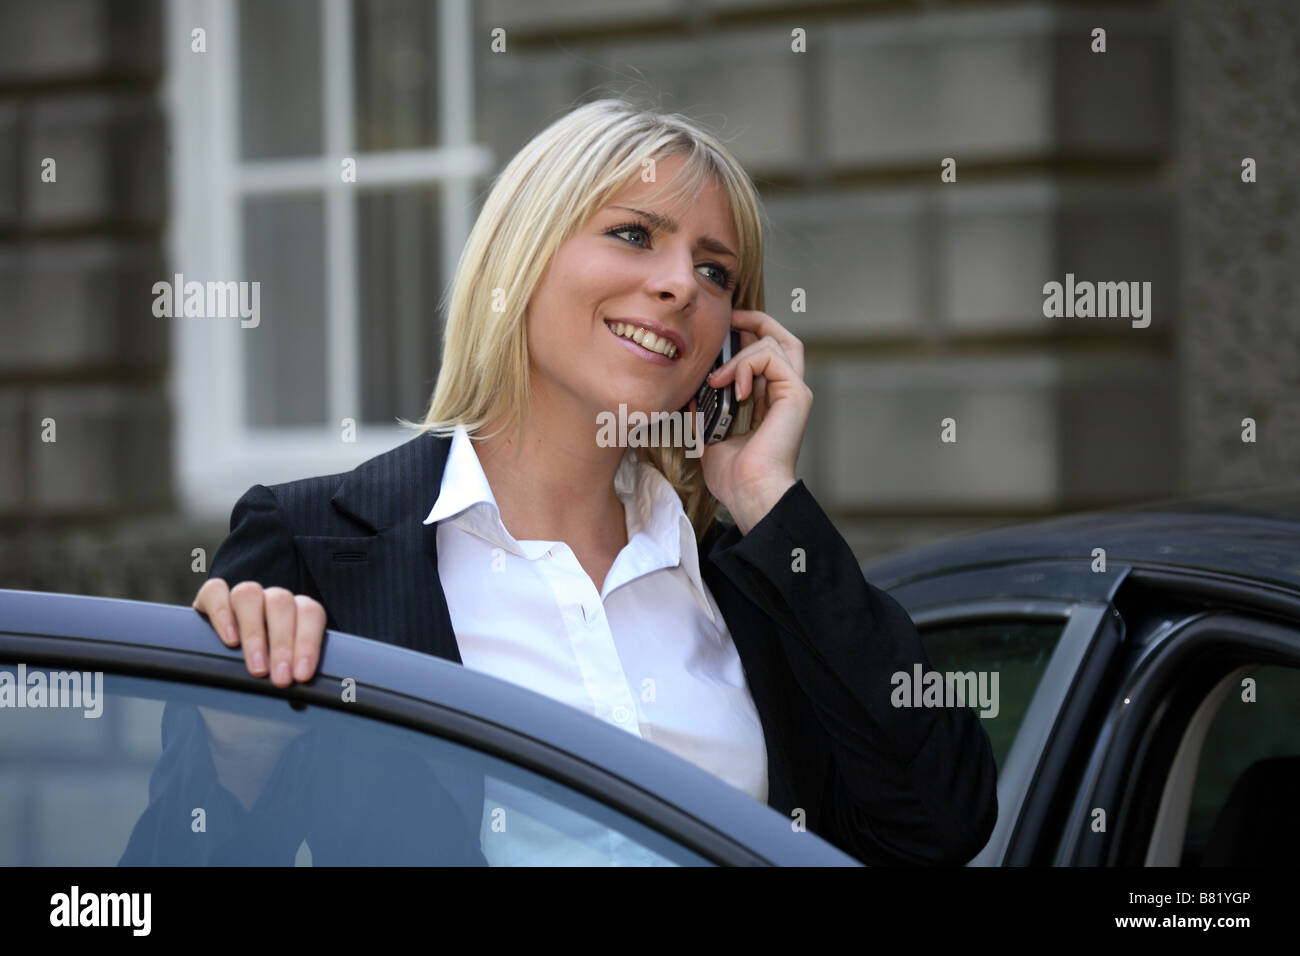 Young business woman chatting on mobile phone - Stock Image